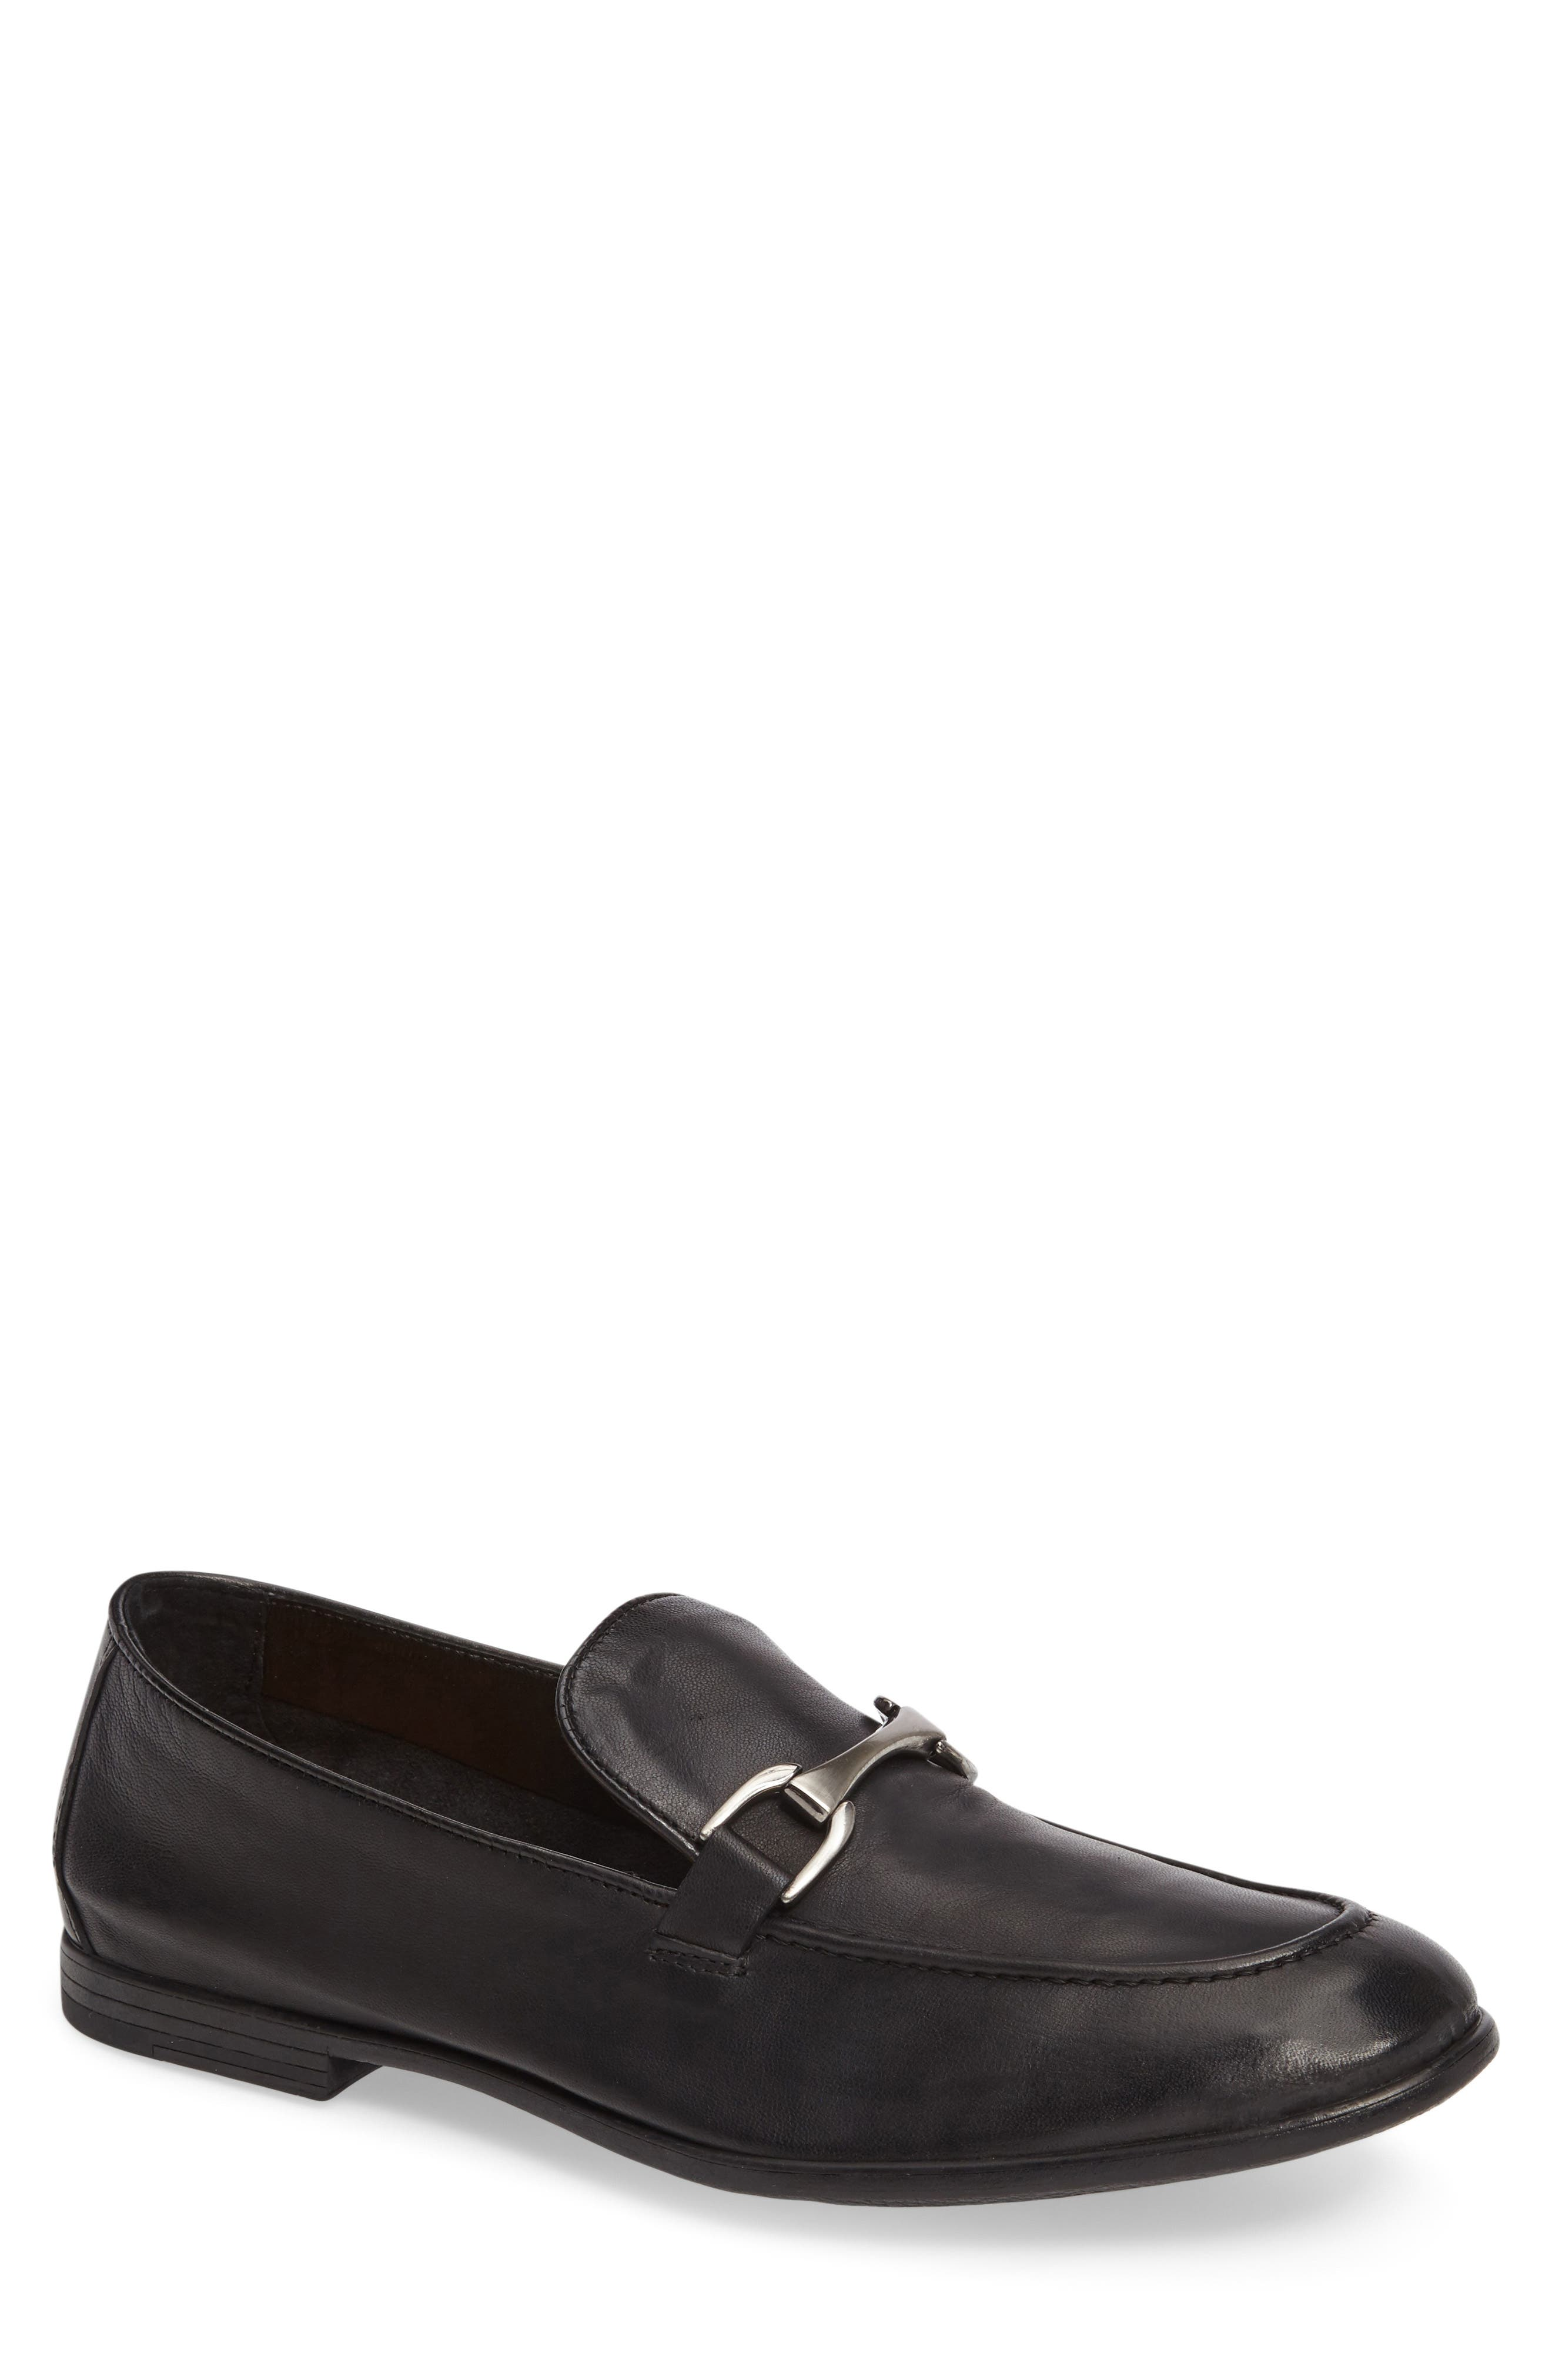 Dally Bit Loafer,                             Main thumbnail 1, color,                             001